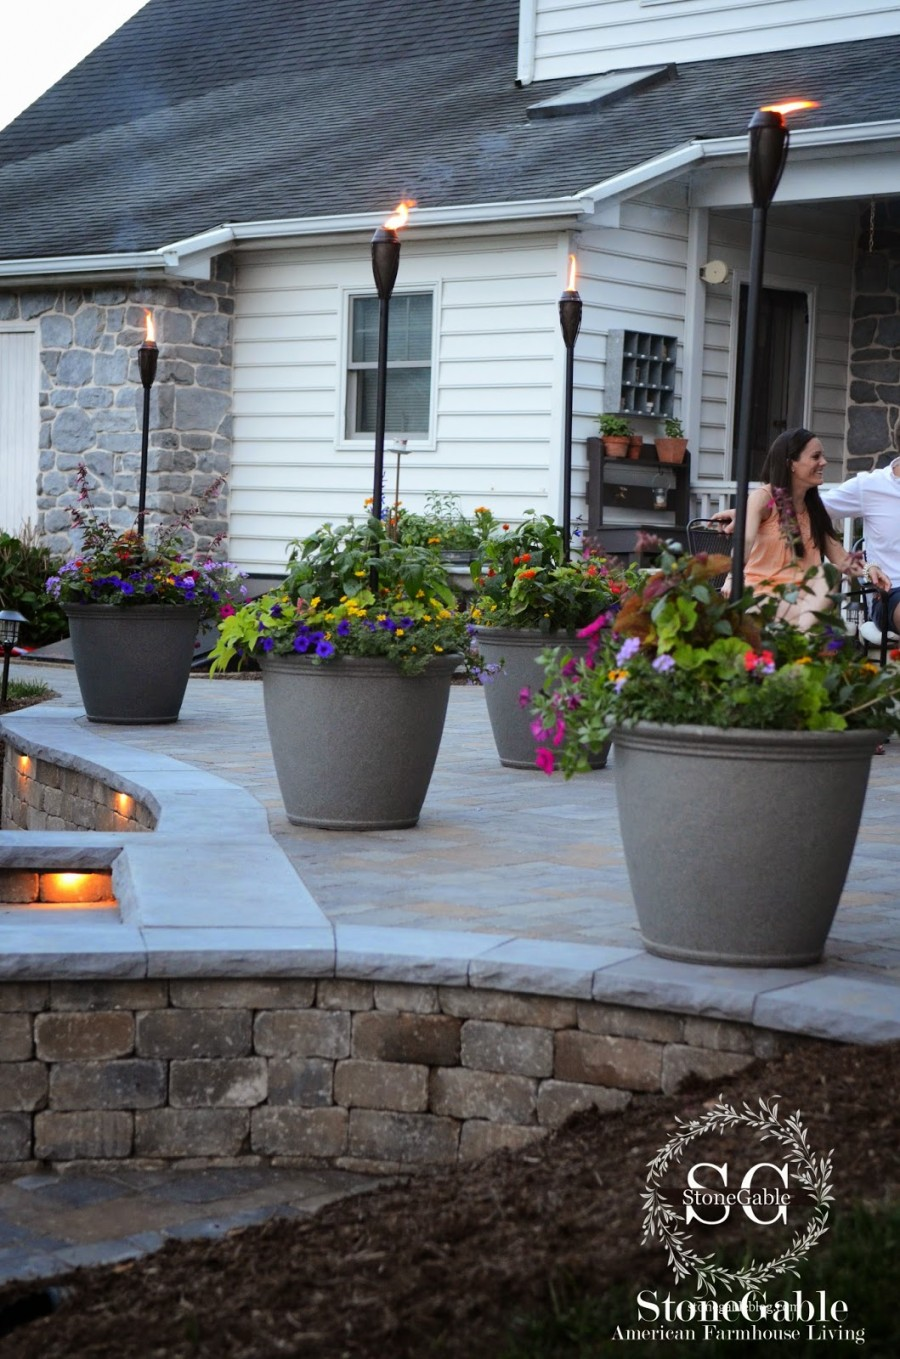 8 Ways To Perk Up Your Porch And Patio For Spring And Summer Stonegable